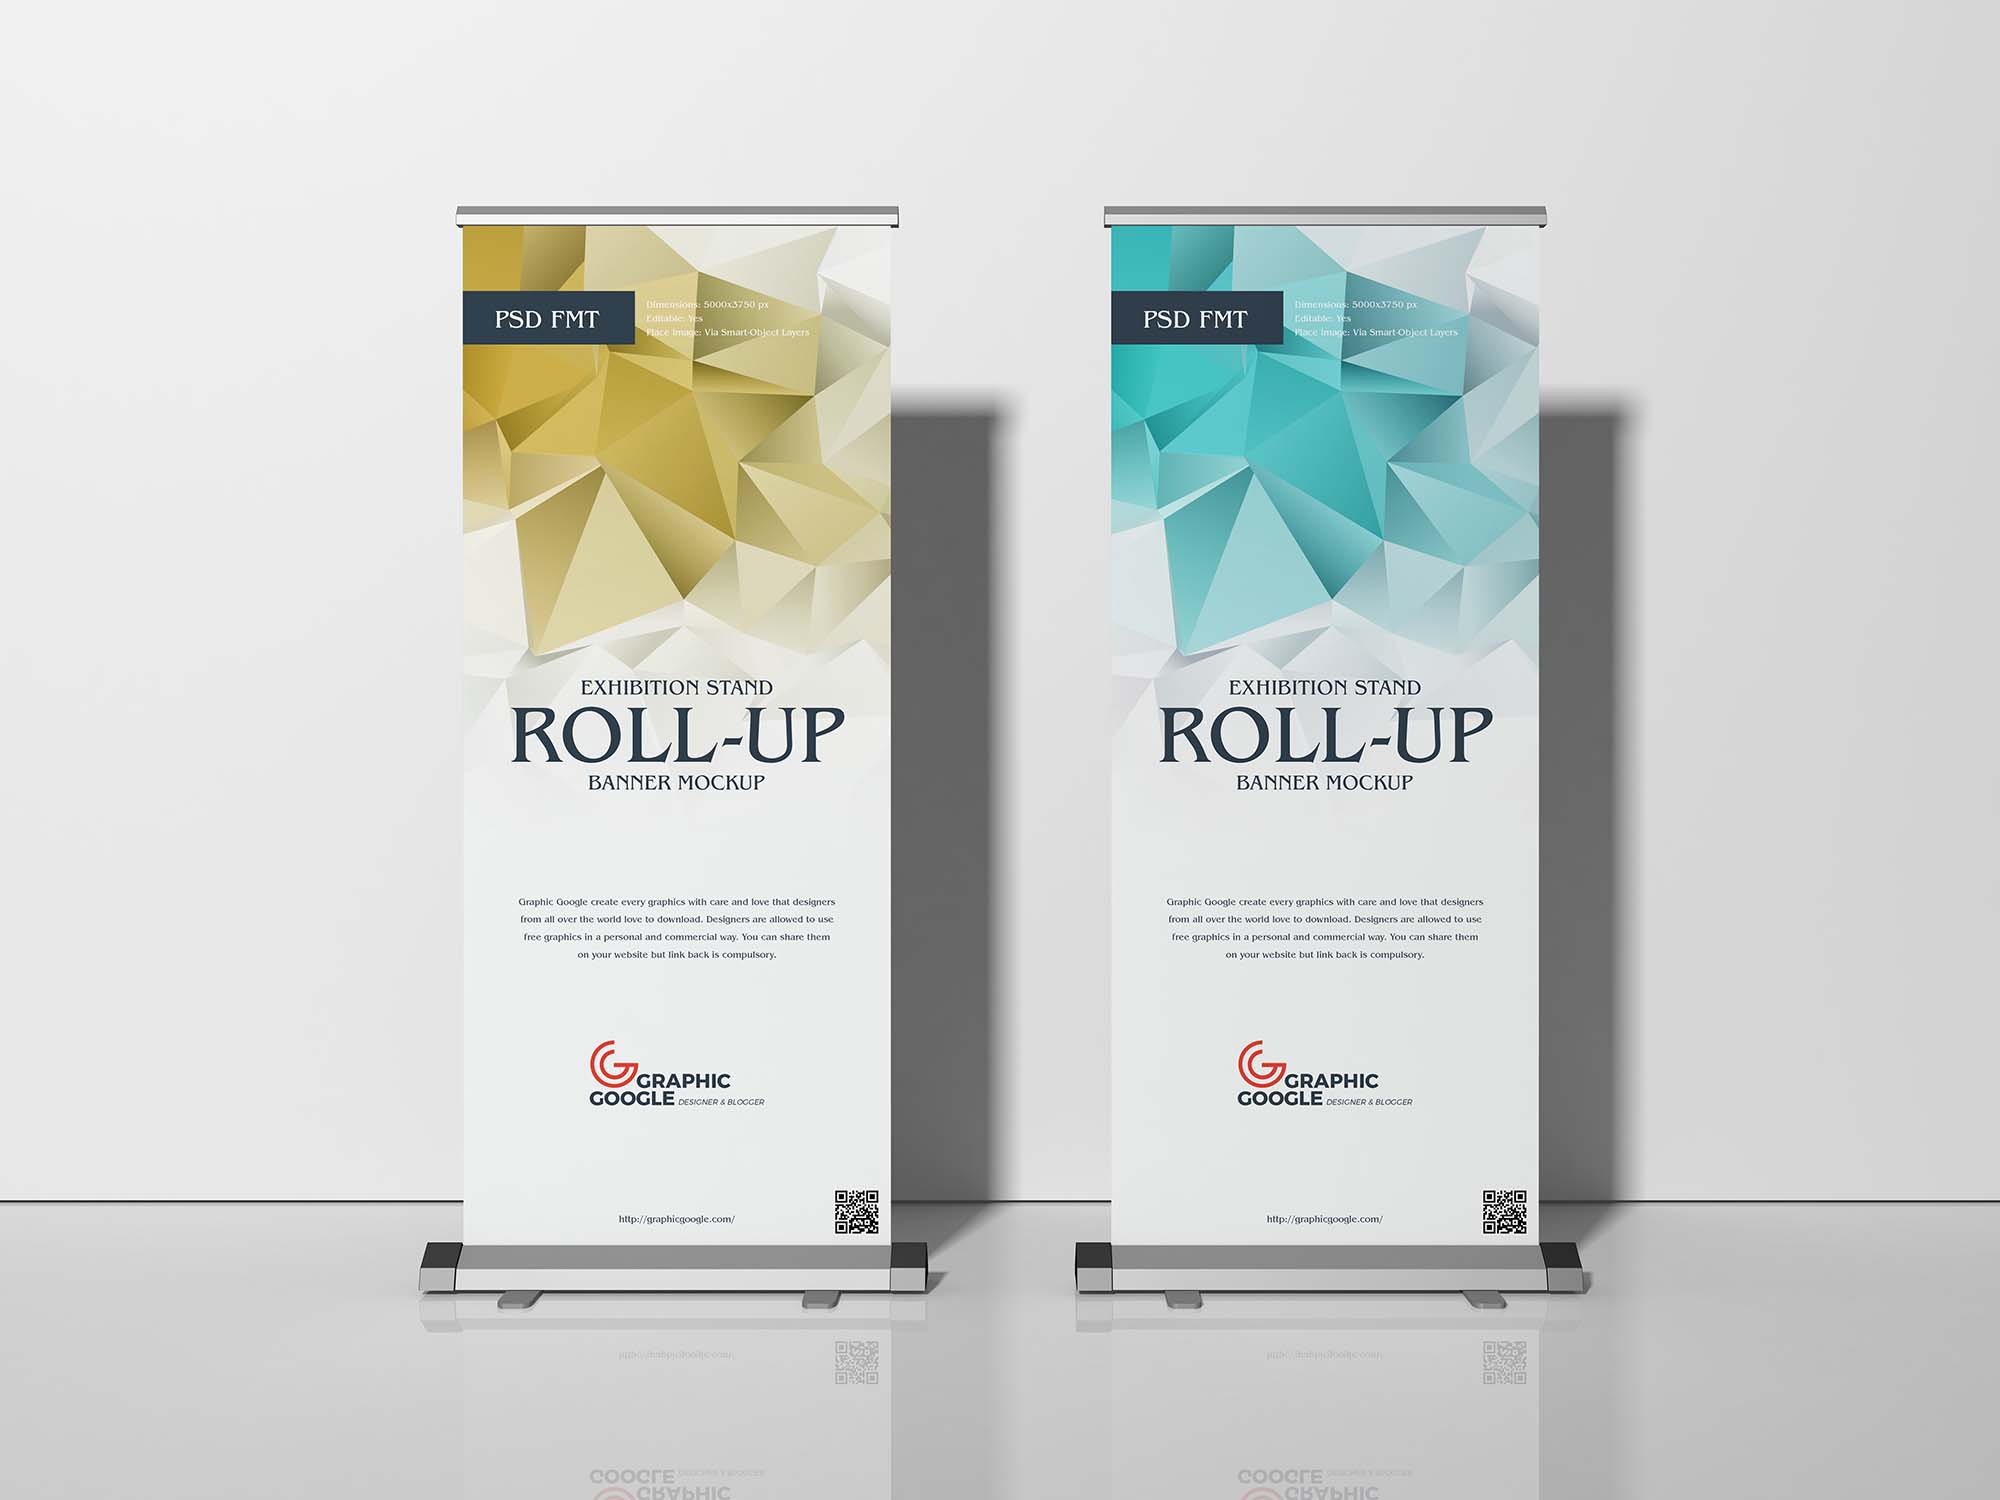 Roll x & desain paket edit banner corel cdr template up siap format. Free Exhibition Stand Roll Up Banner Mockup Psd